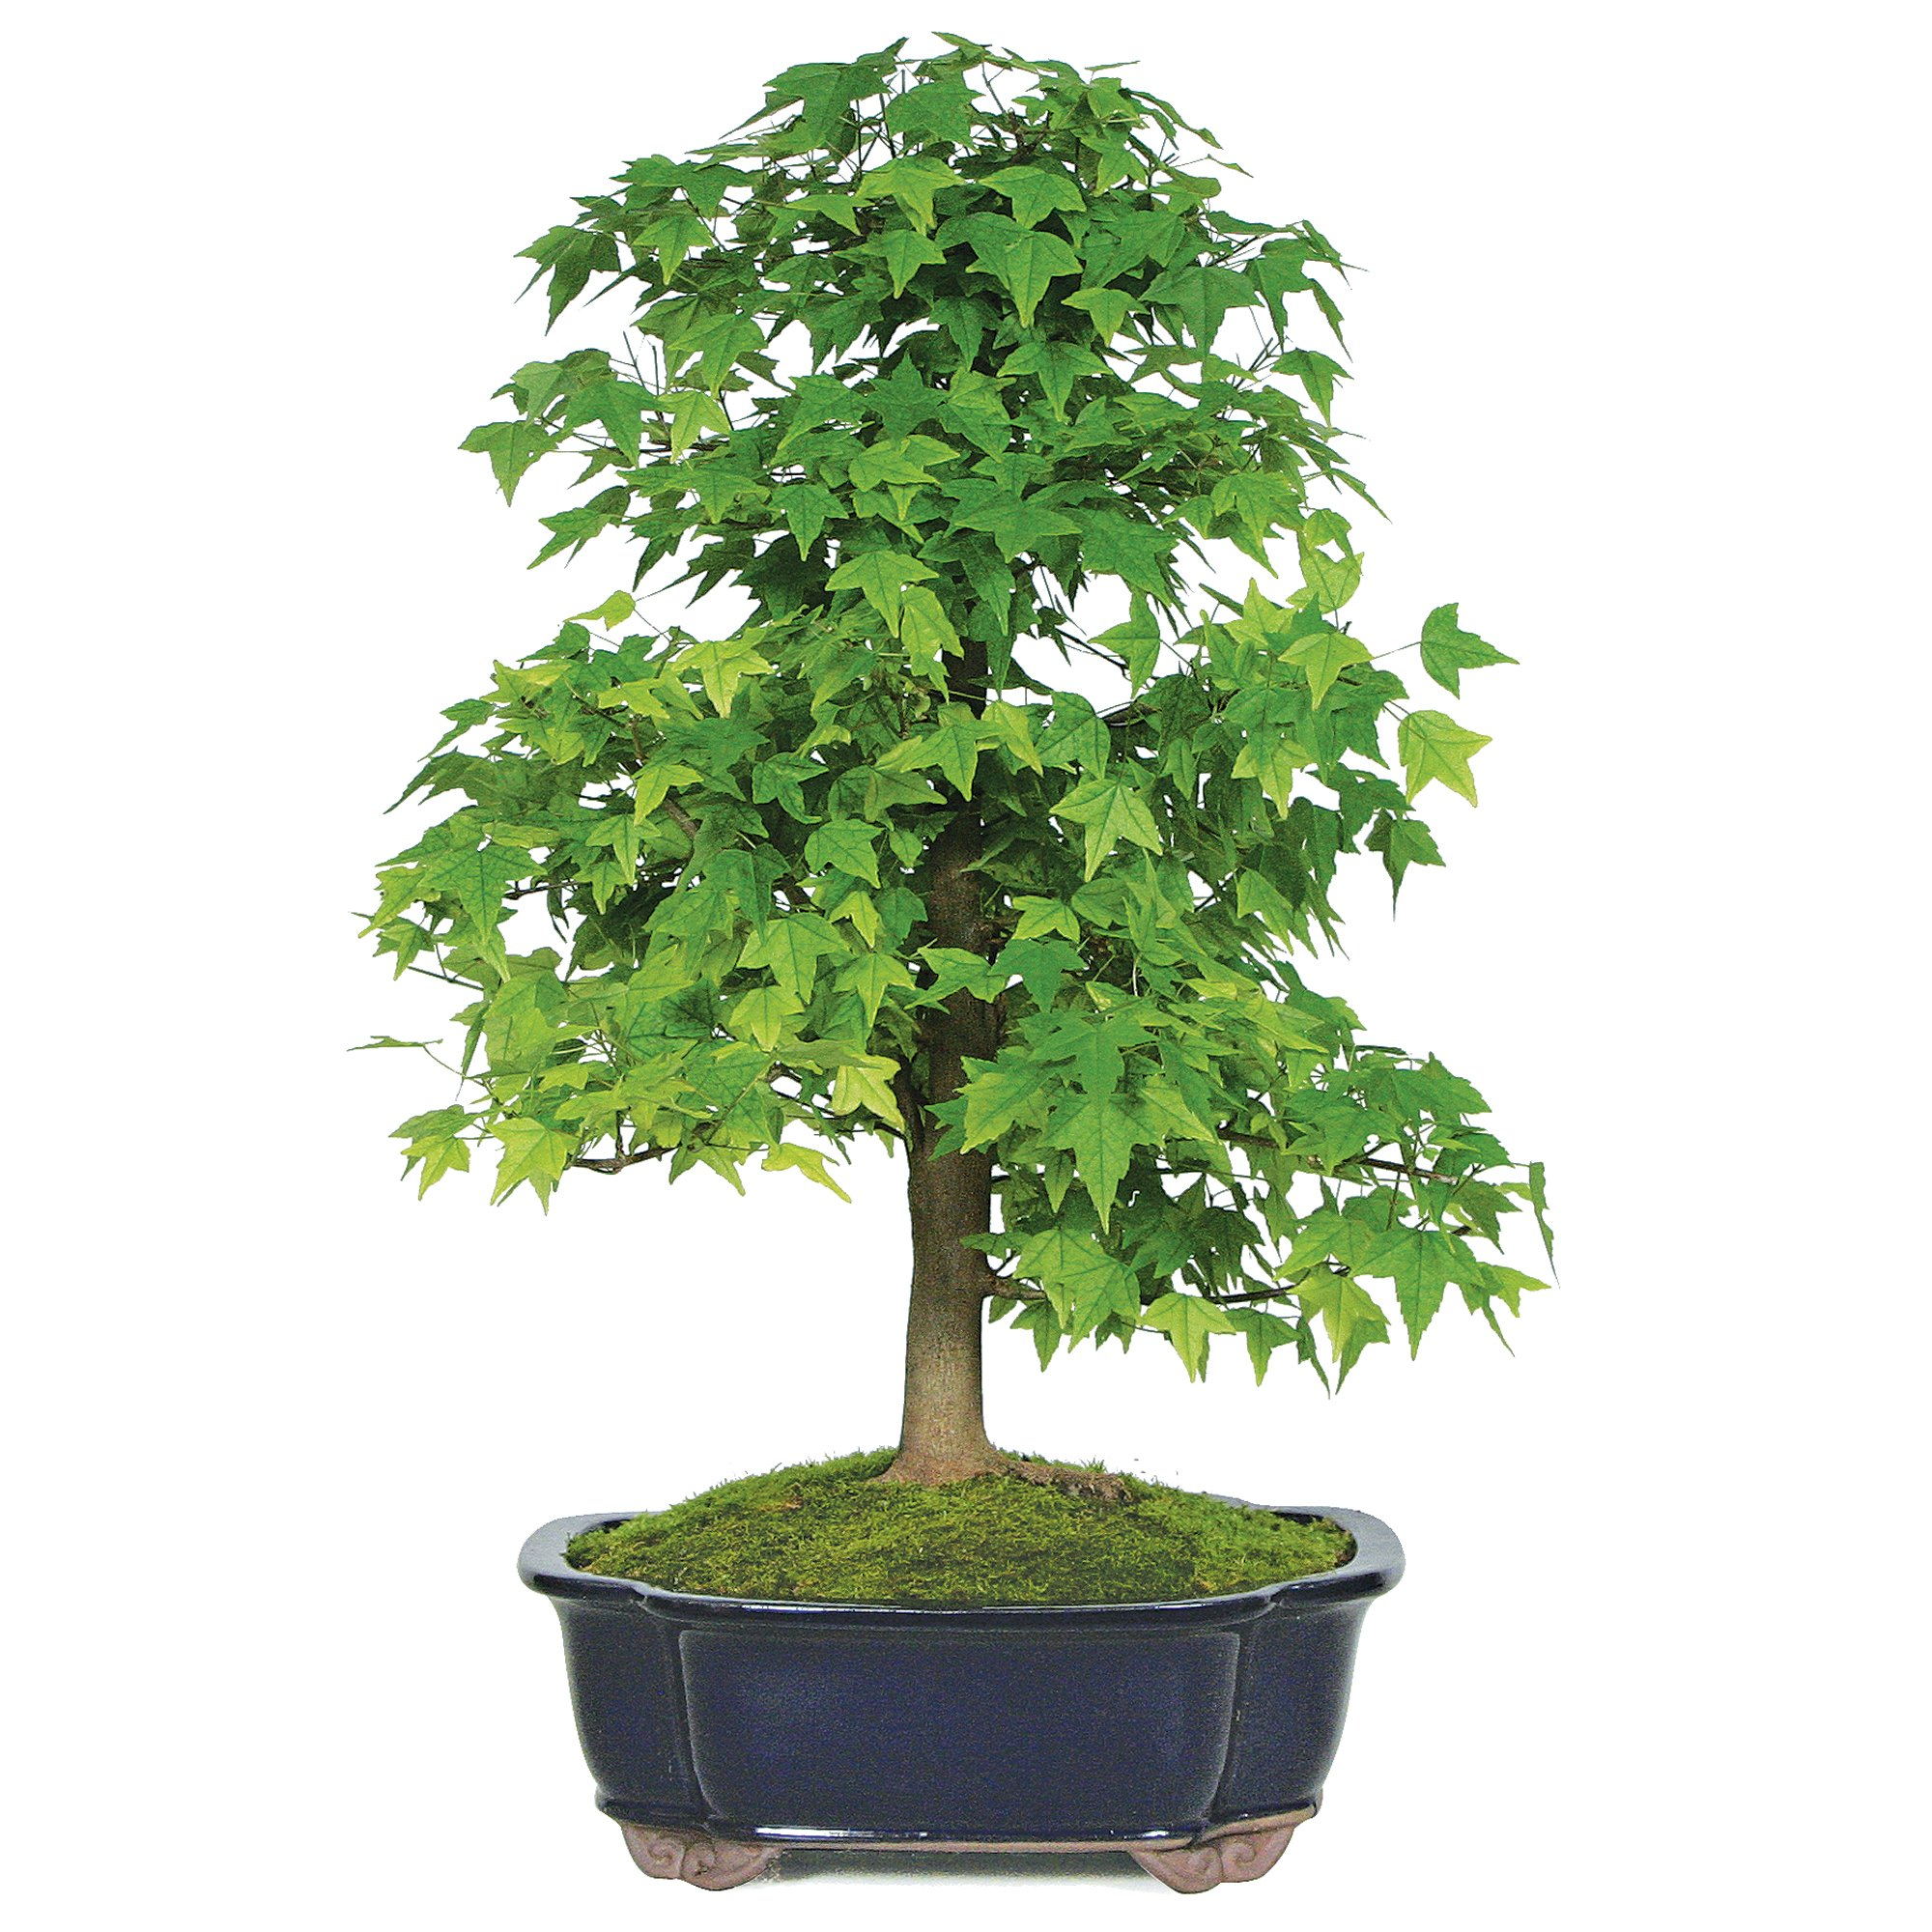 Brussel's Bonsai DT6212TM Acer buergerianum Indoor Bonsai, X Large, Trident Maple by Brussel's Bonsai